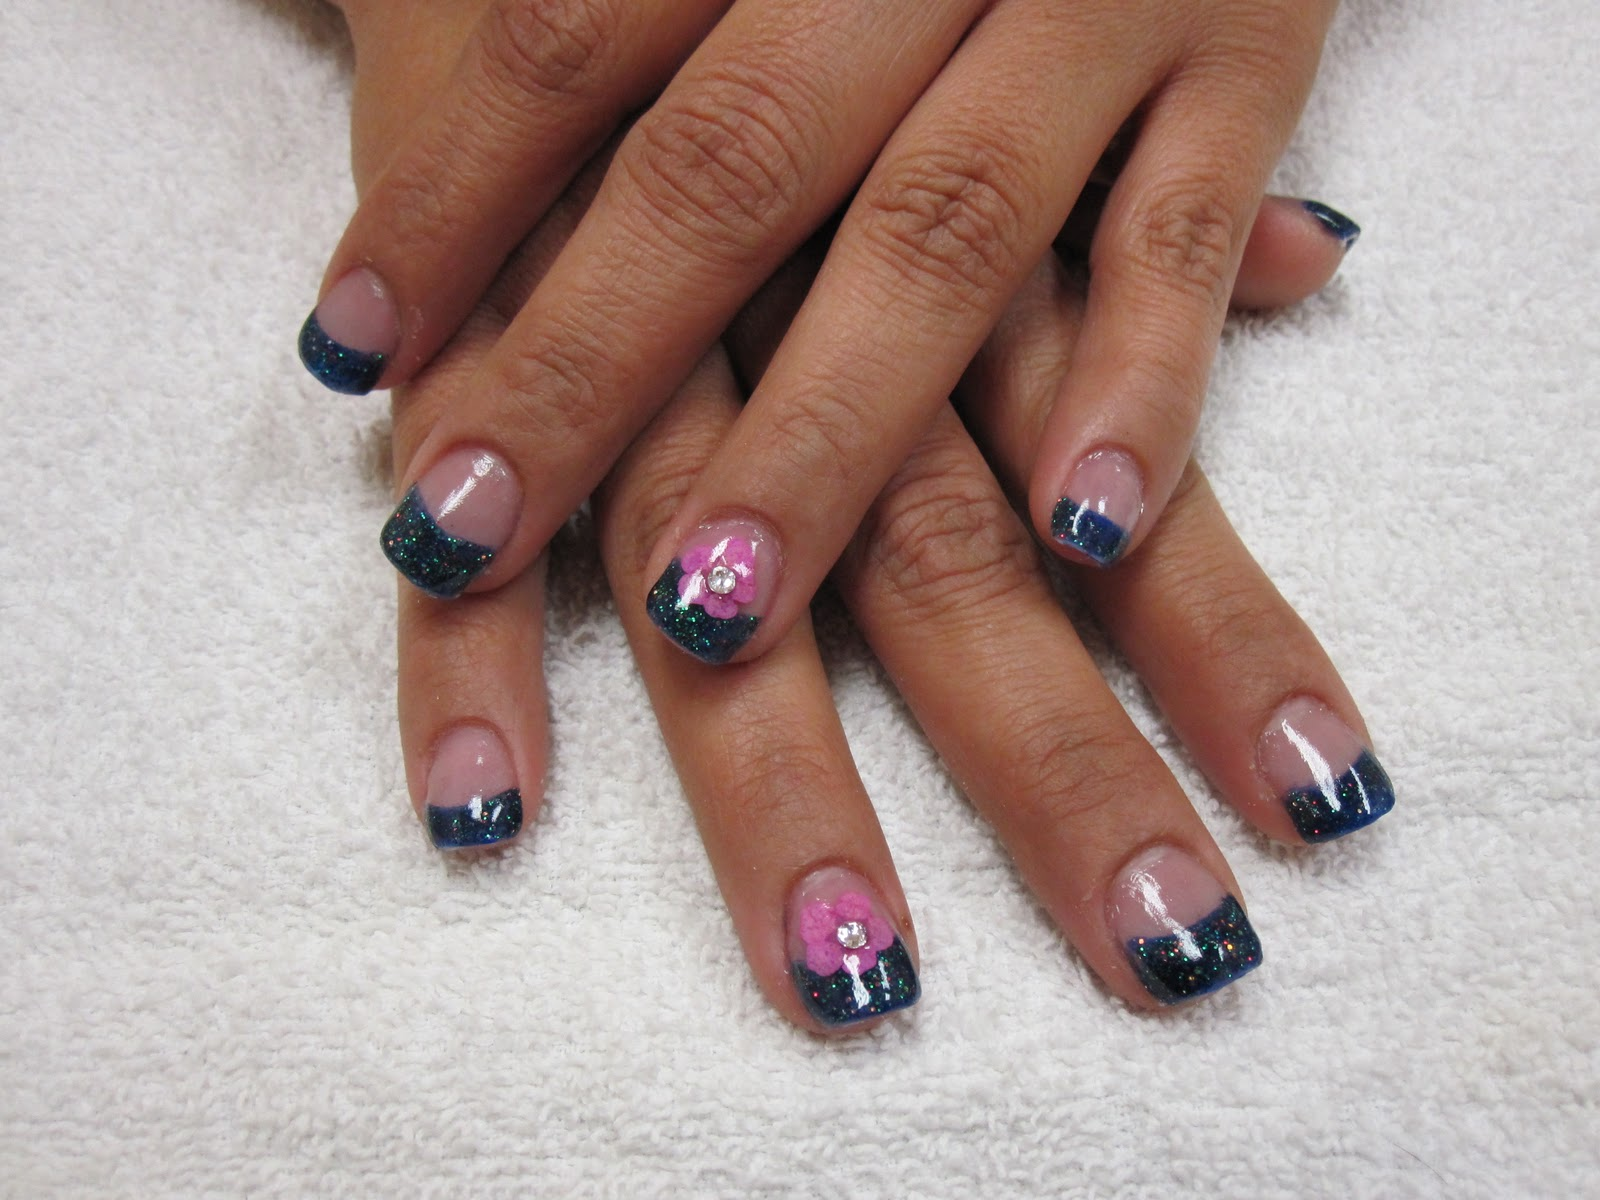 Nail art las vegas embedded flower nails embedded flower nails prinsesfo Choice Image